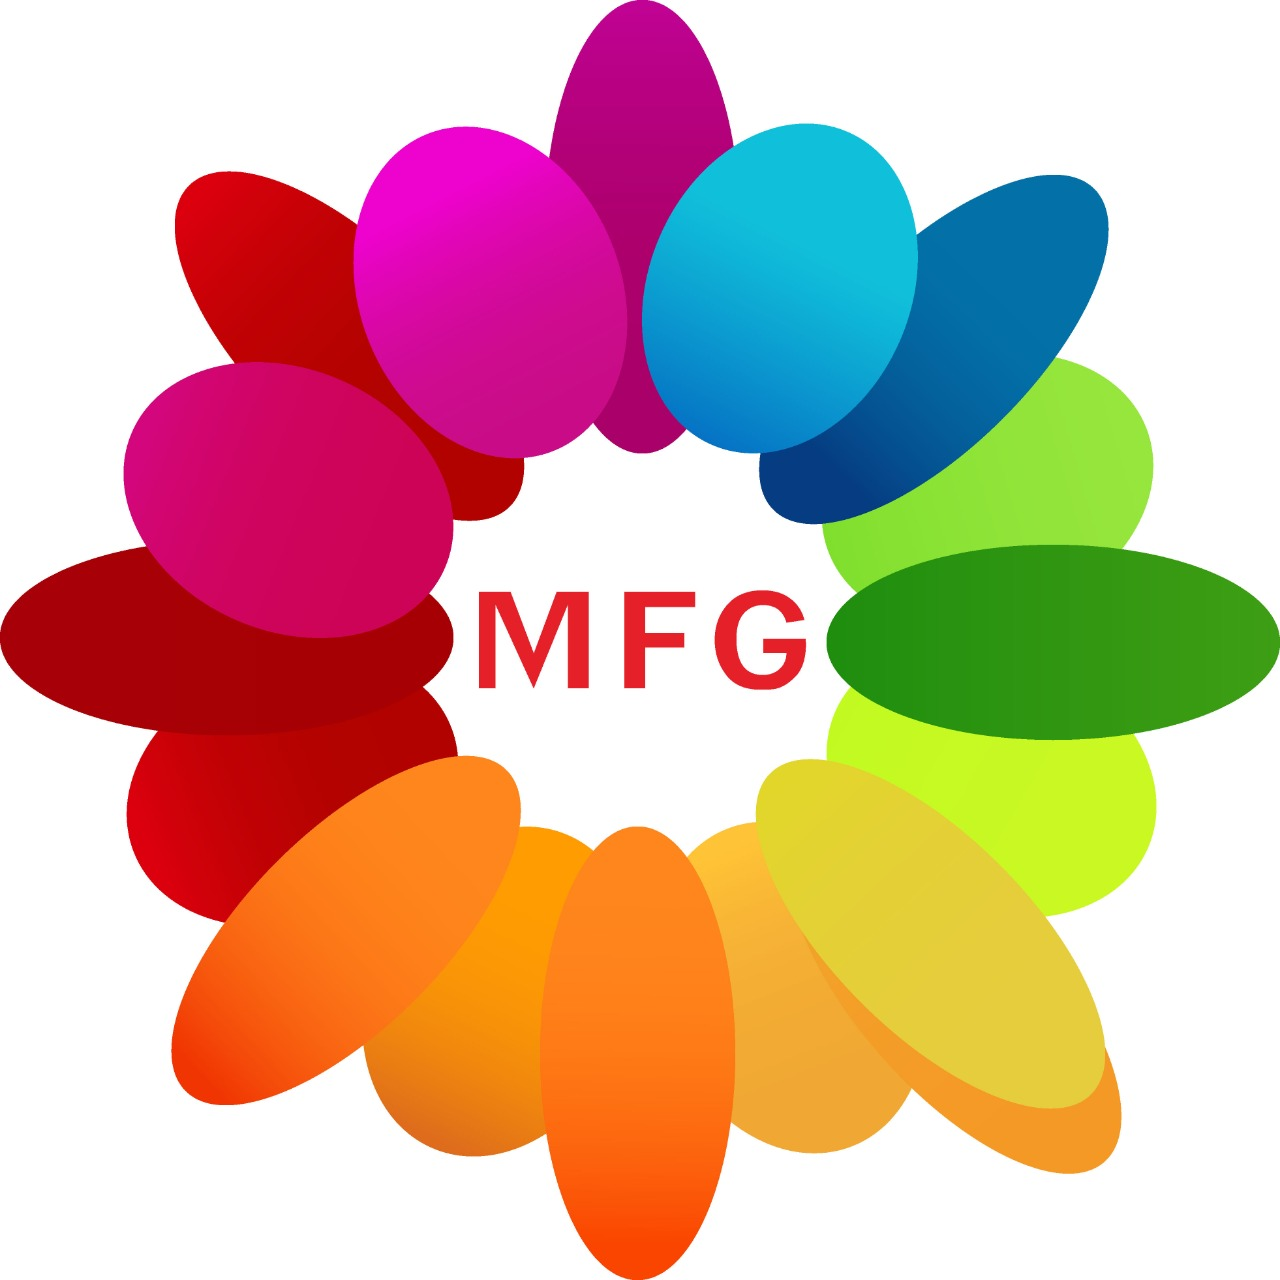 7 pink lilies arranged in vase